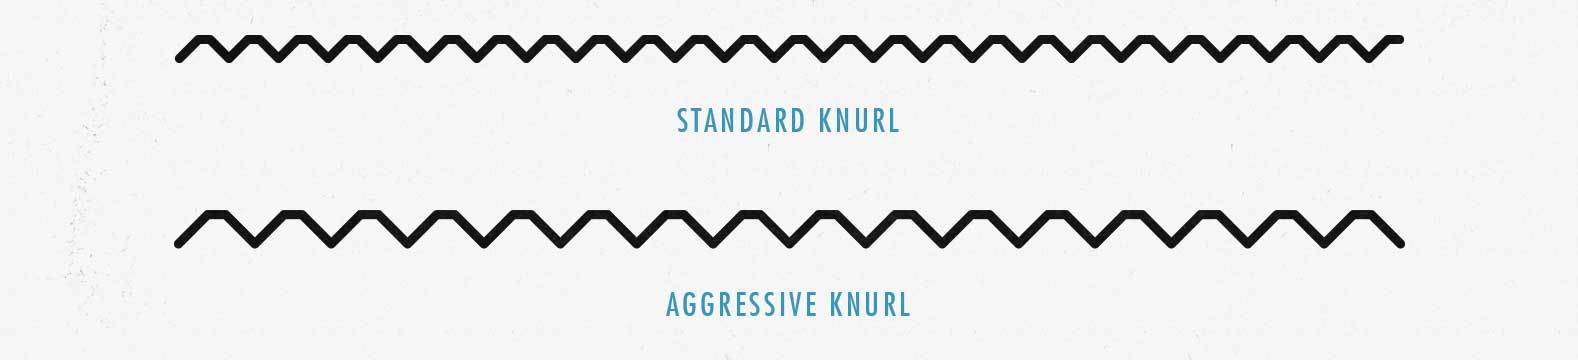 What's the difference between standard and aggressive barbell knurling? Which is better?